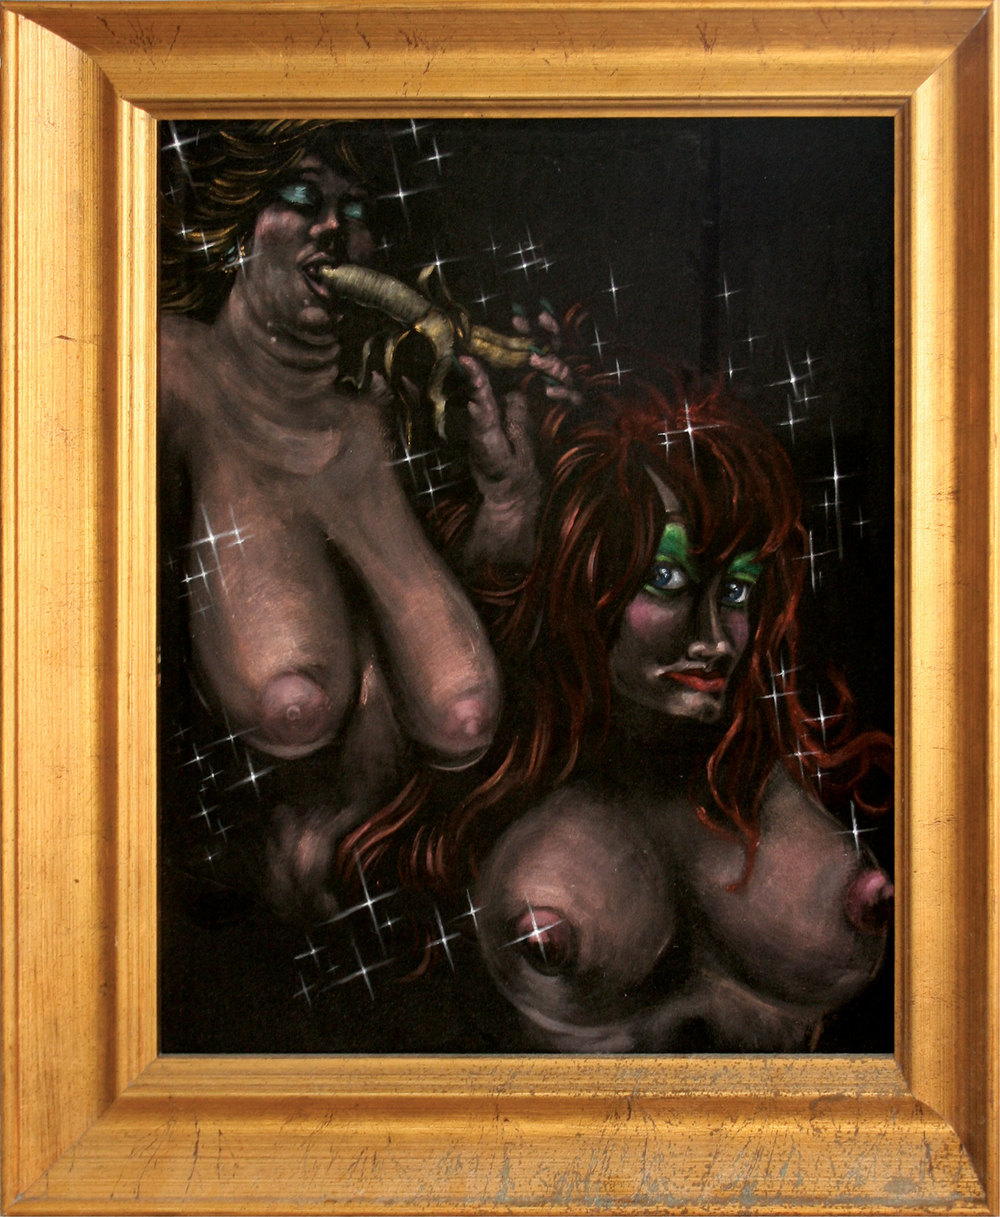 Christopher Brand & Mackie Jurray.  Fantasies?   2007 - acrylic on velvet. 2' x 1.5'.